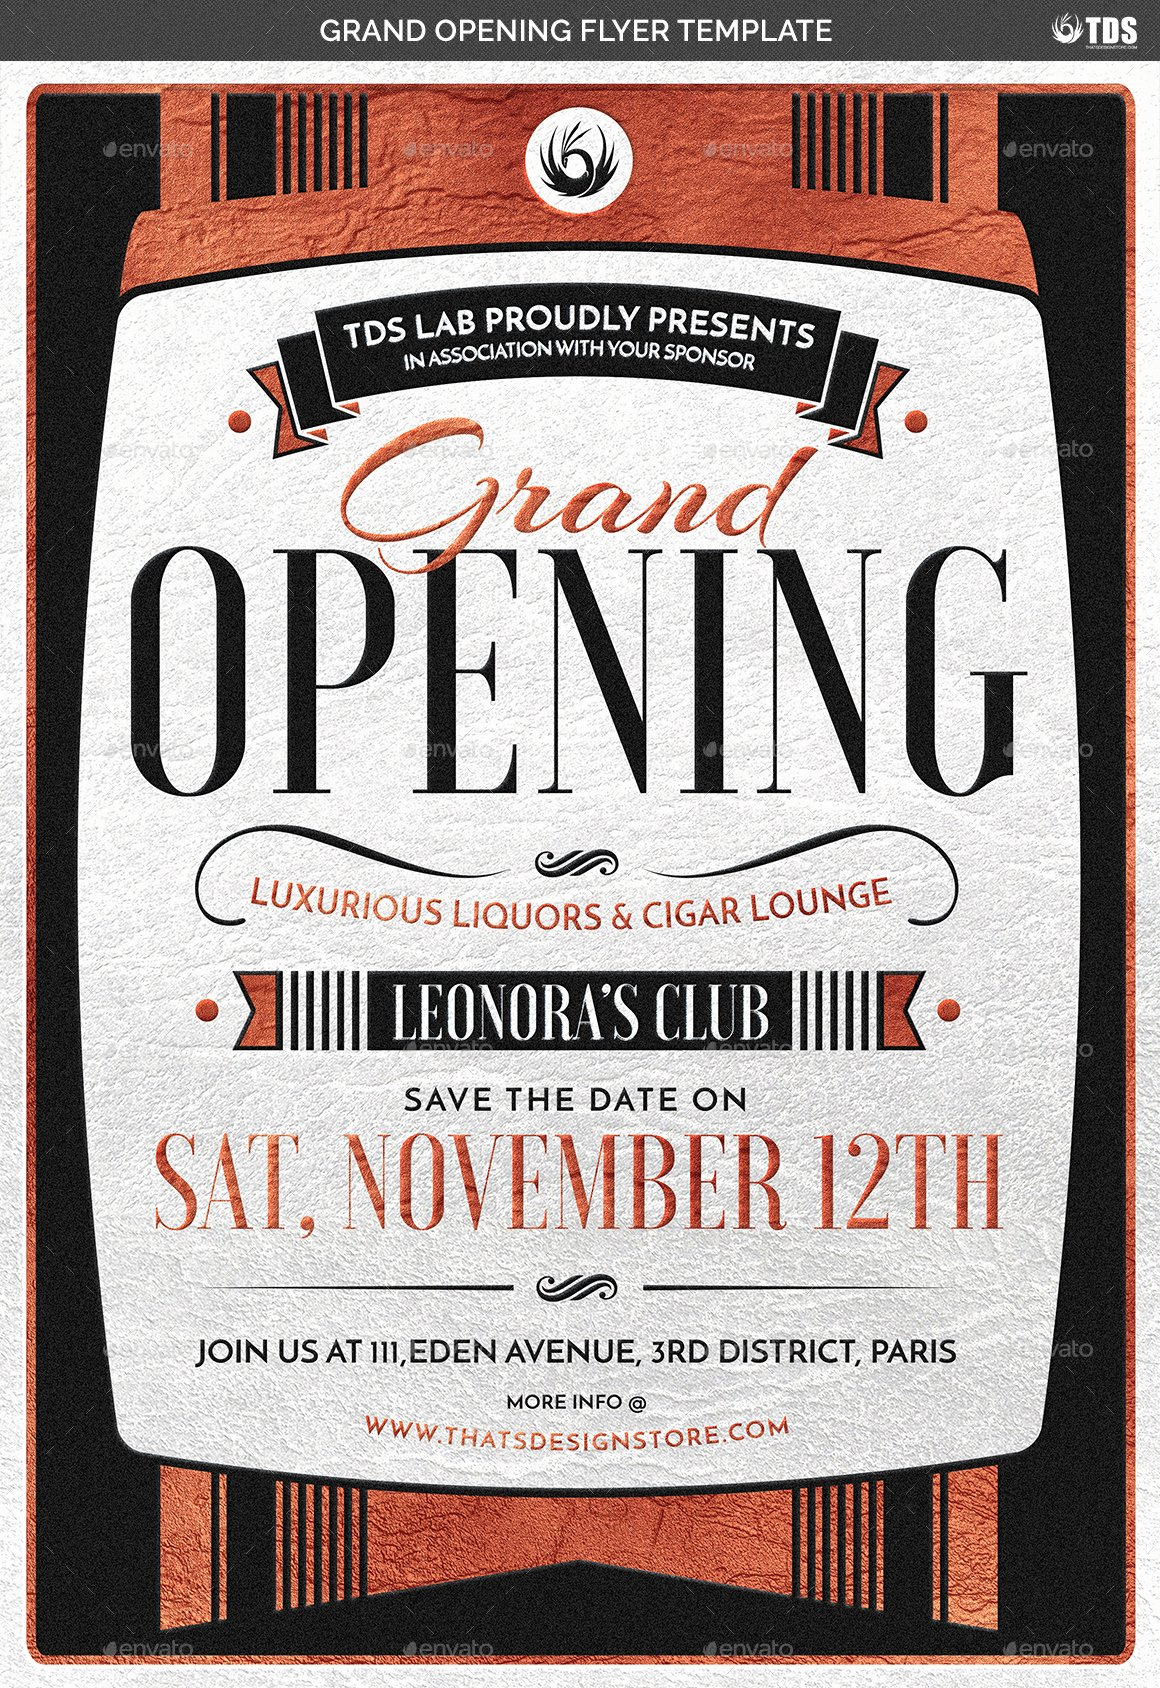 Grand Opening Flyer Template Unique Grand Opening Flyer Template by Lou606